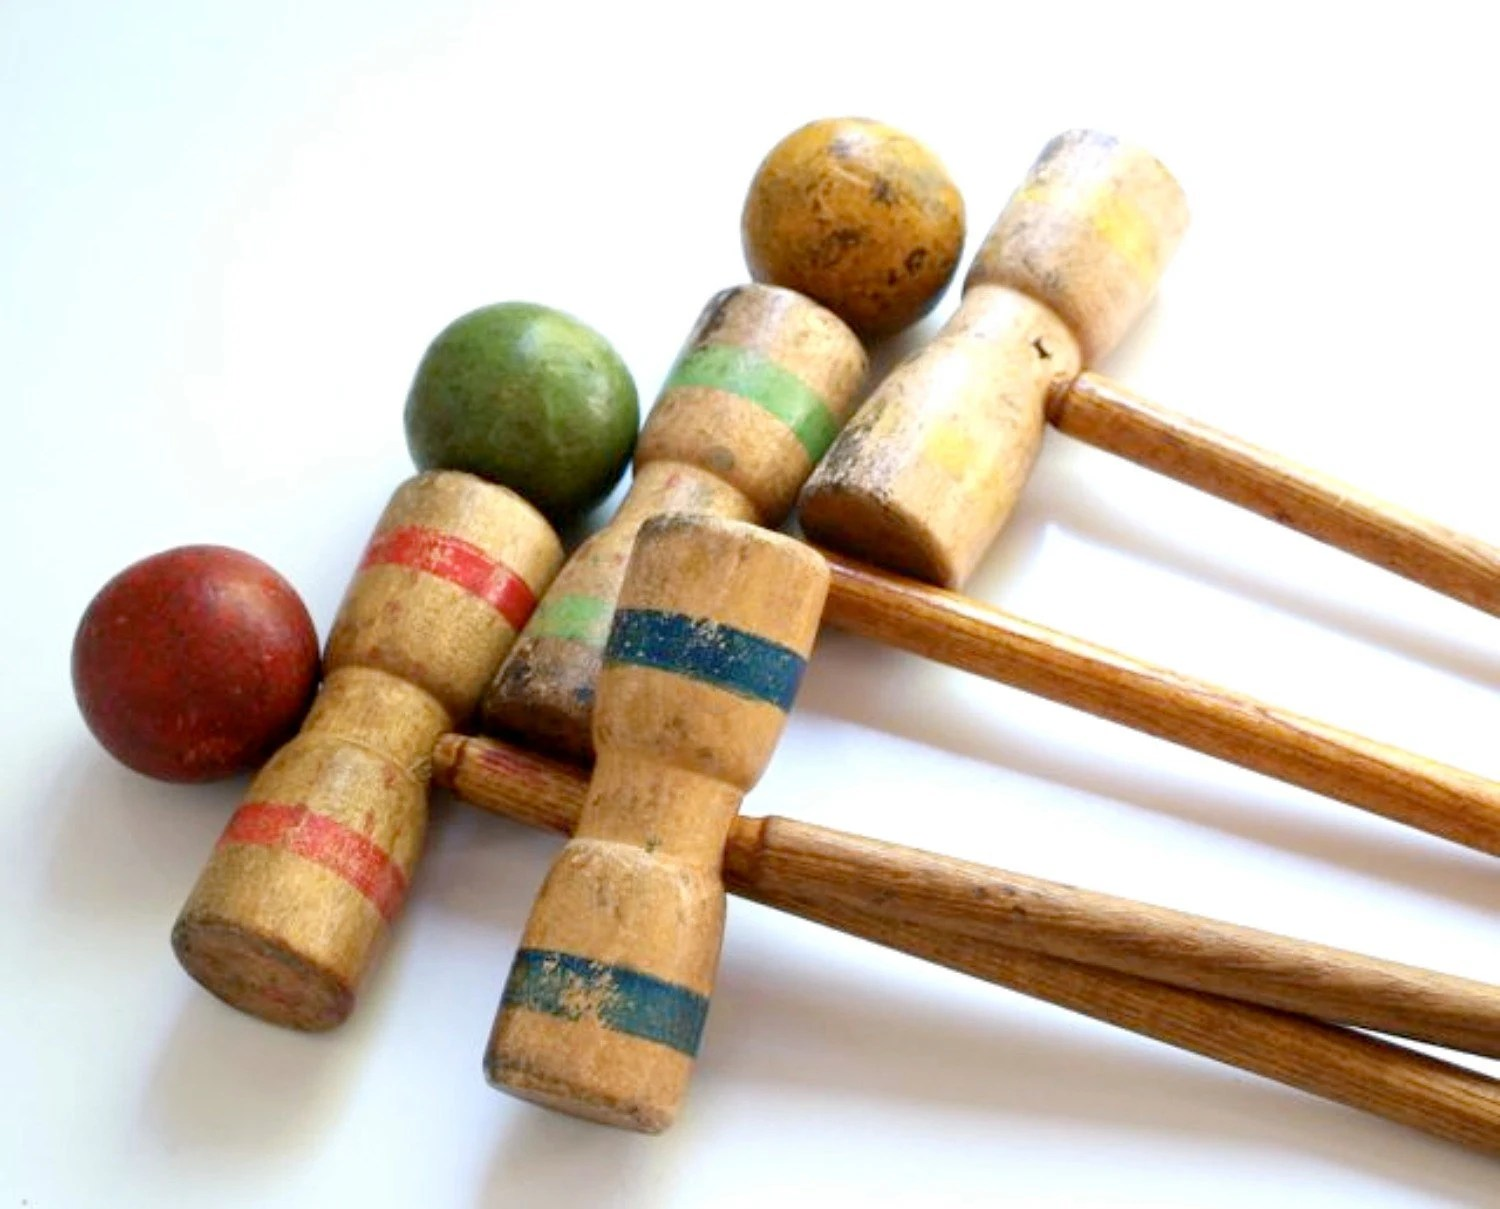 RESERVED FOR MAXI Antique Wood Croquet Set